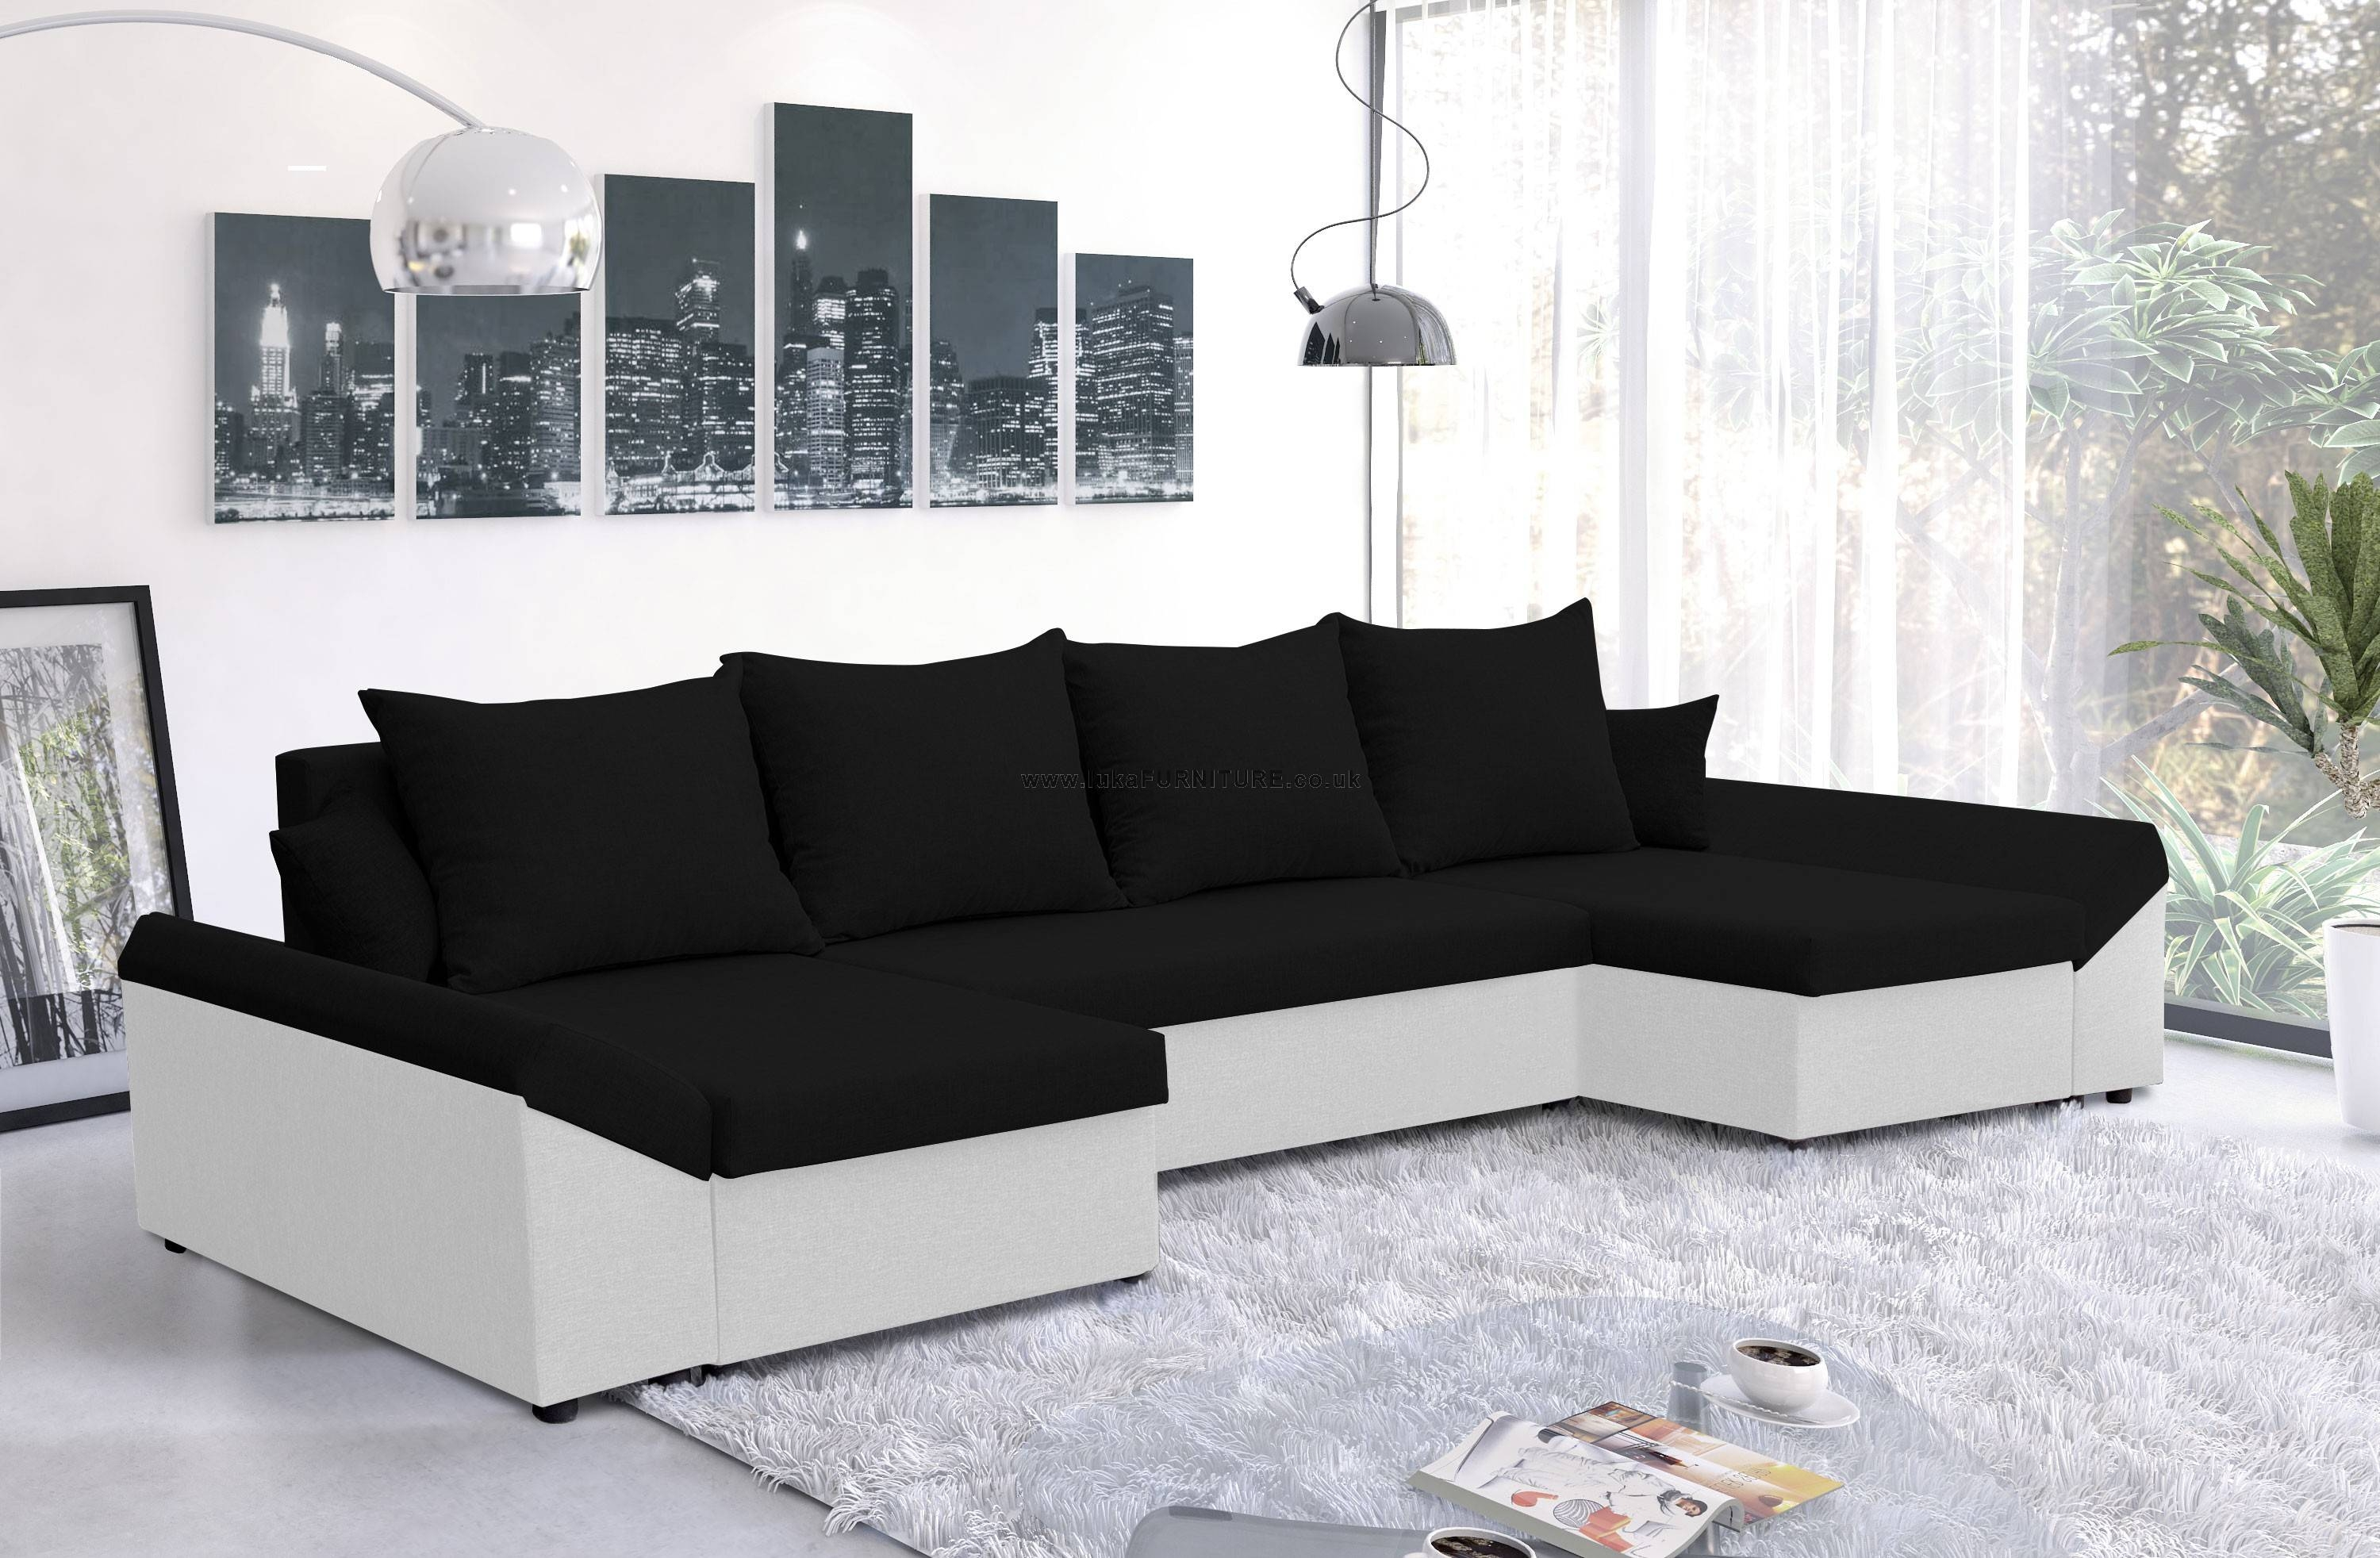 Cheap Corner Sofa Beds, Choose Fabric Or Leather - Uk Store inside Cheap Corner Sofa Bed (Image 3 of 30)